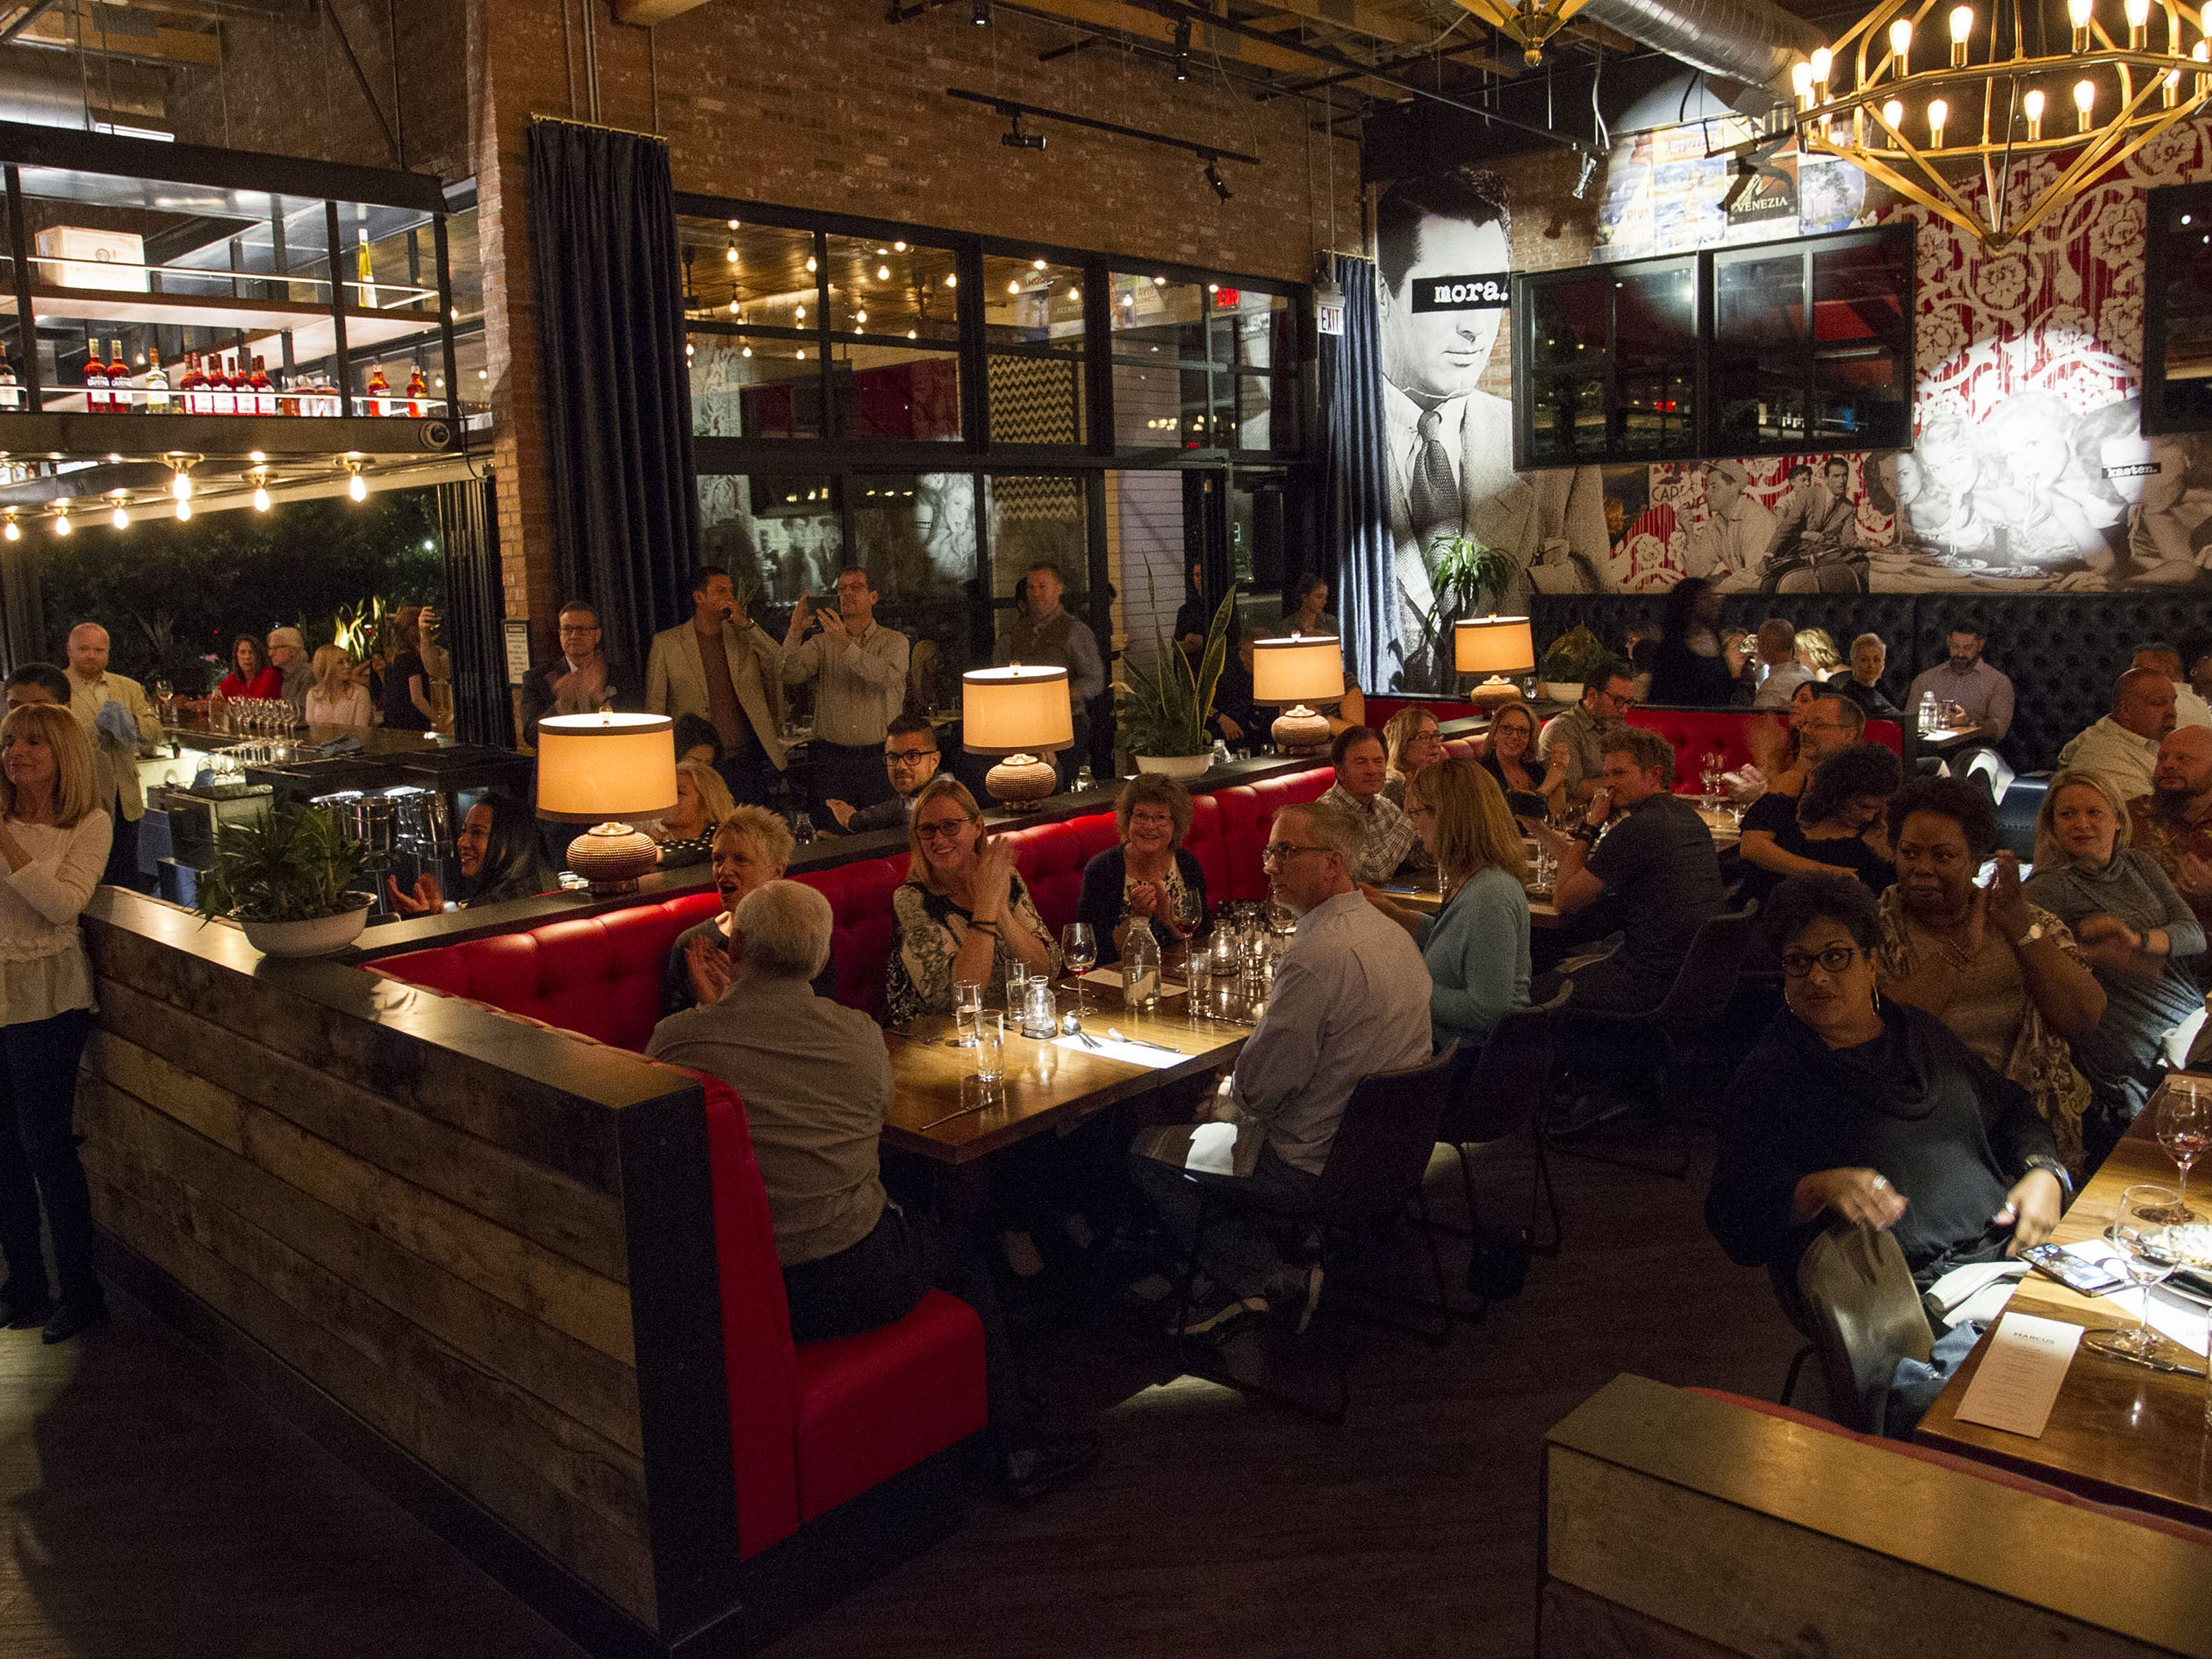 Diners enjoy food and friends during the exclusive kickoff dining event at Mora Italian for azcentral Wine & Food Experience featuring chefs Scott Conant and Marcus Samuelsson.